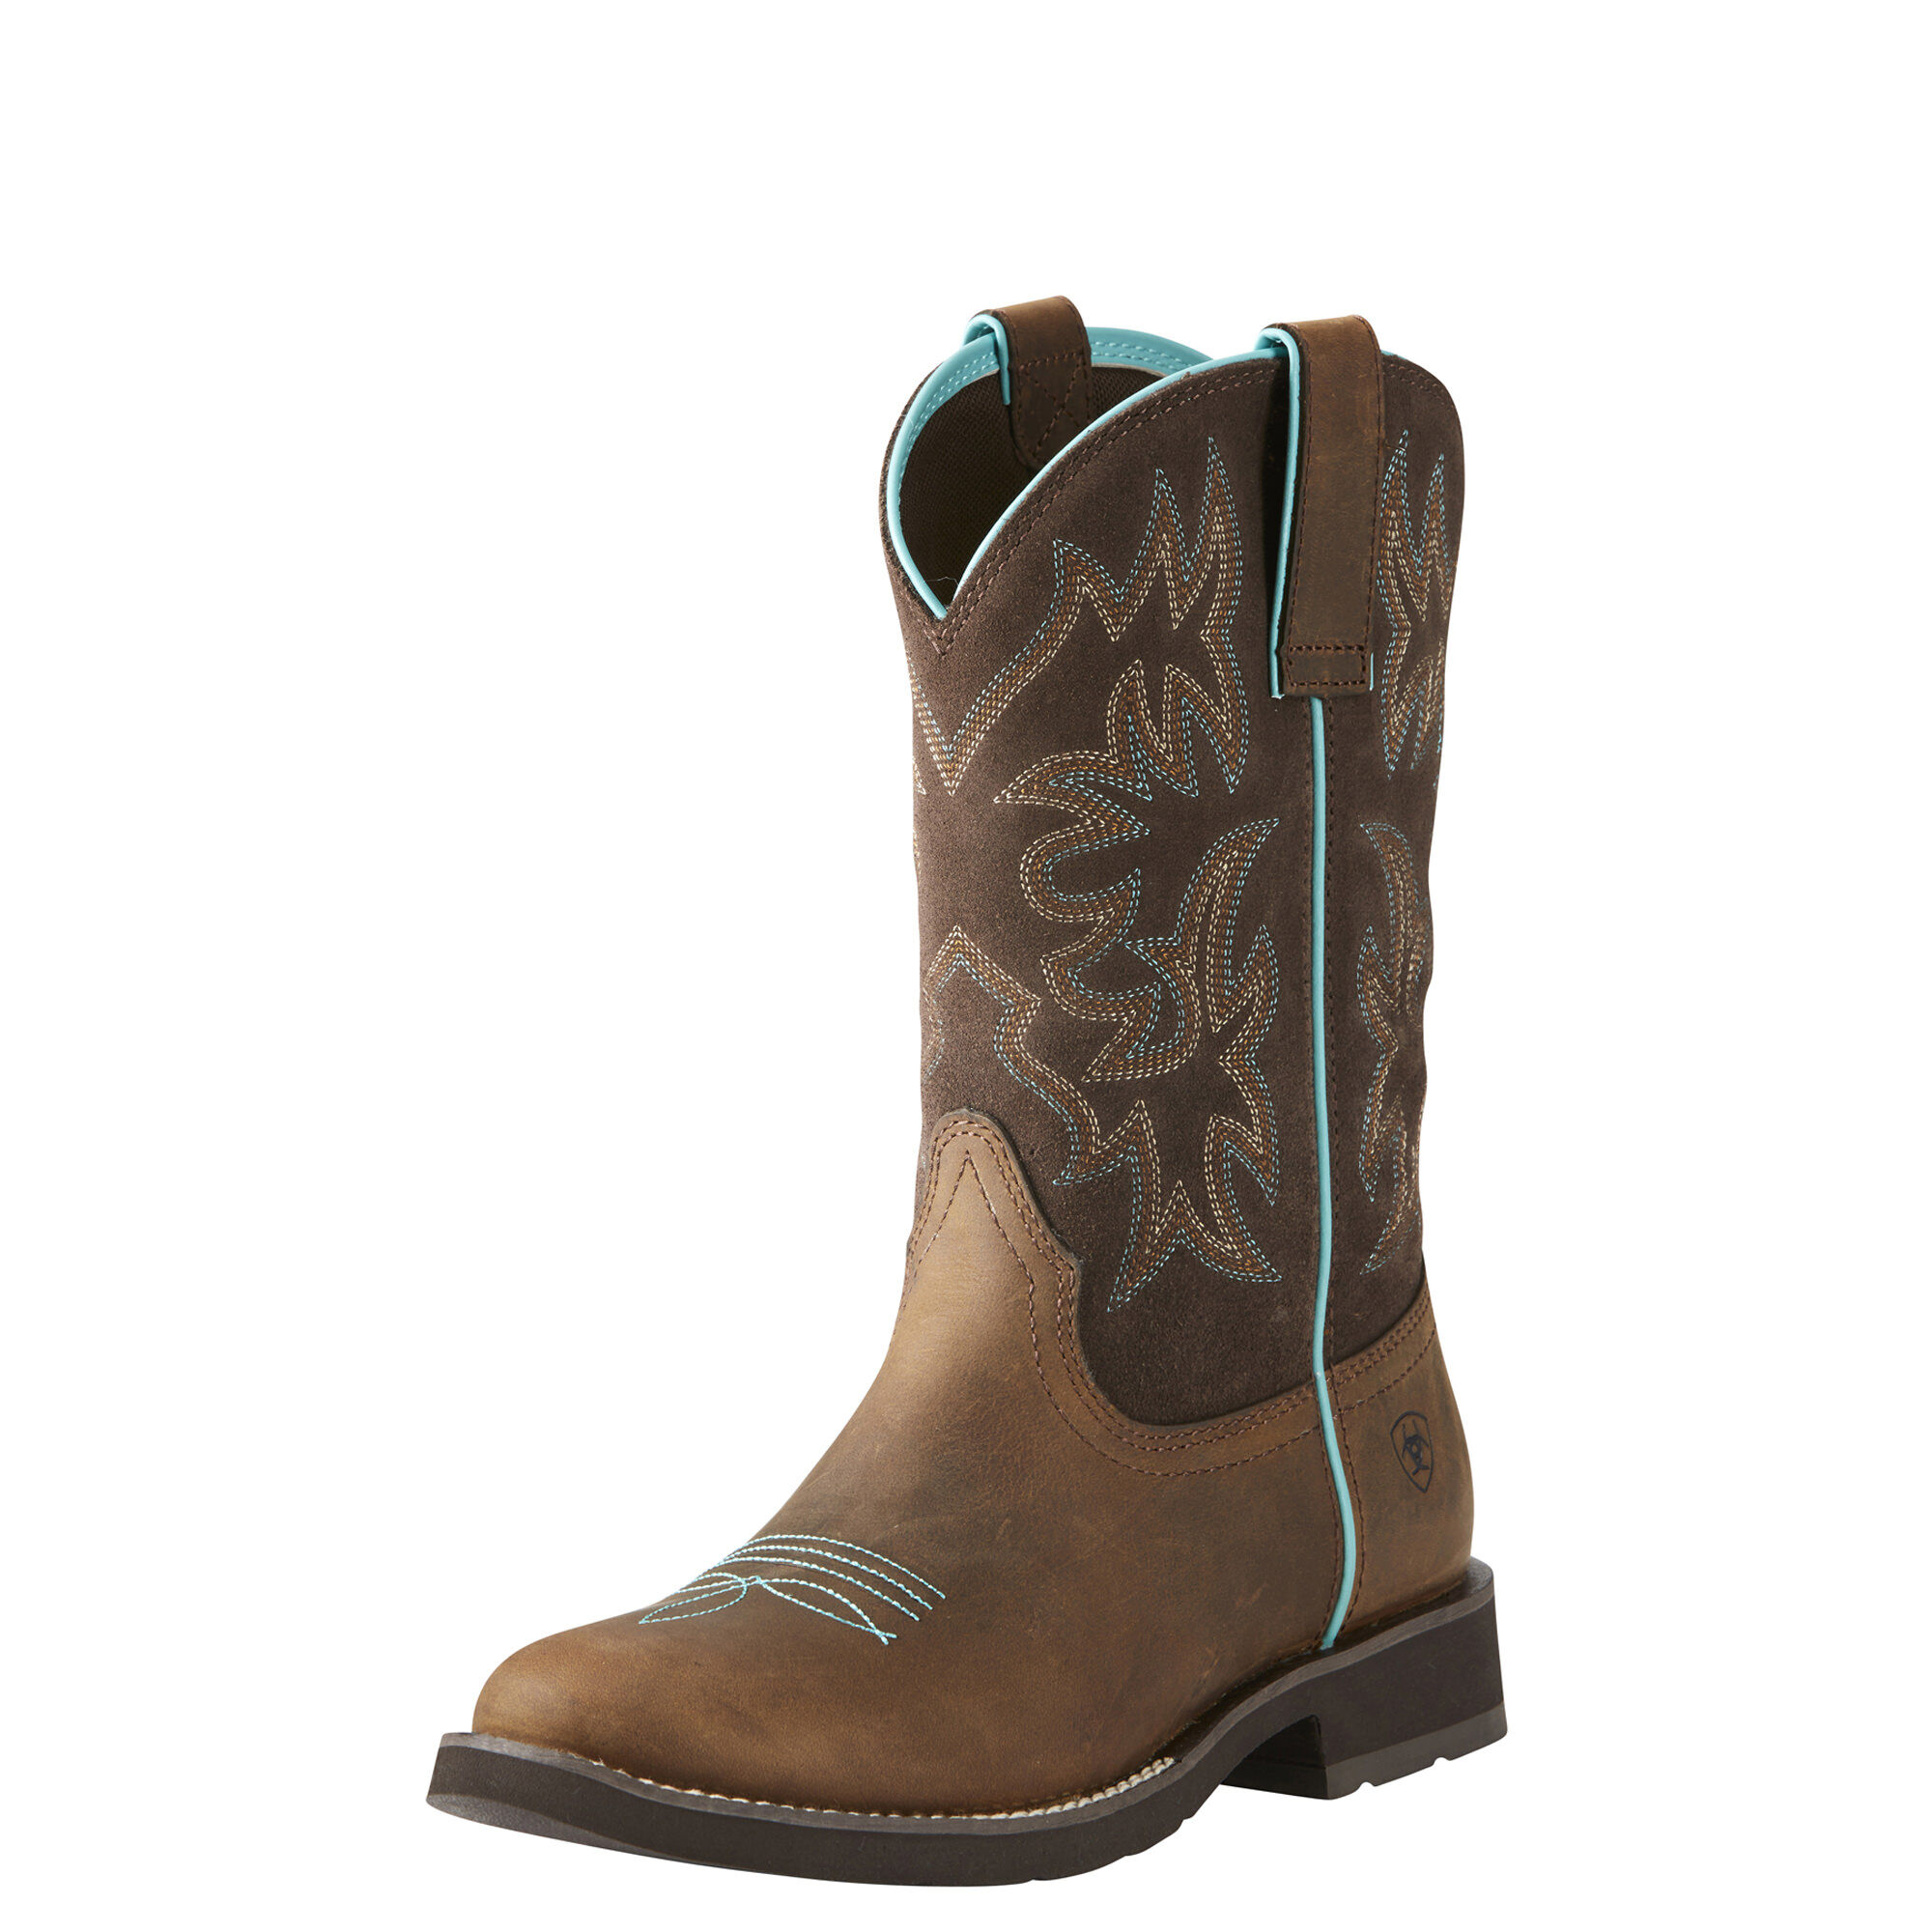 Women's Delilah Round Toe Western Boots in Distressed Brown Leather by Ariat